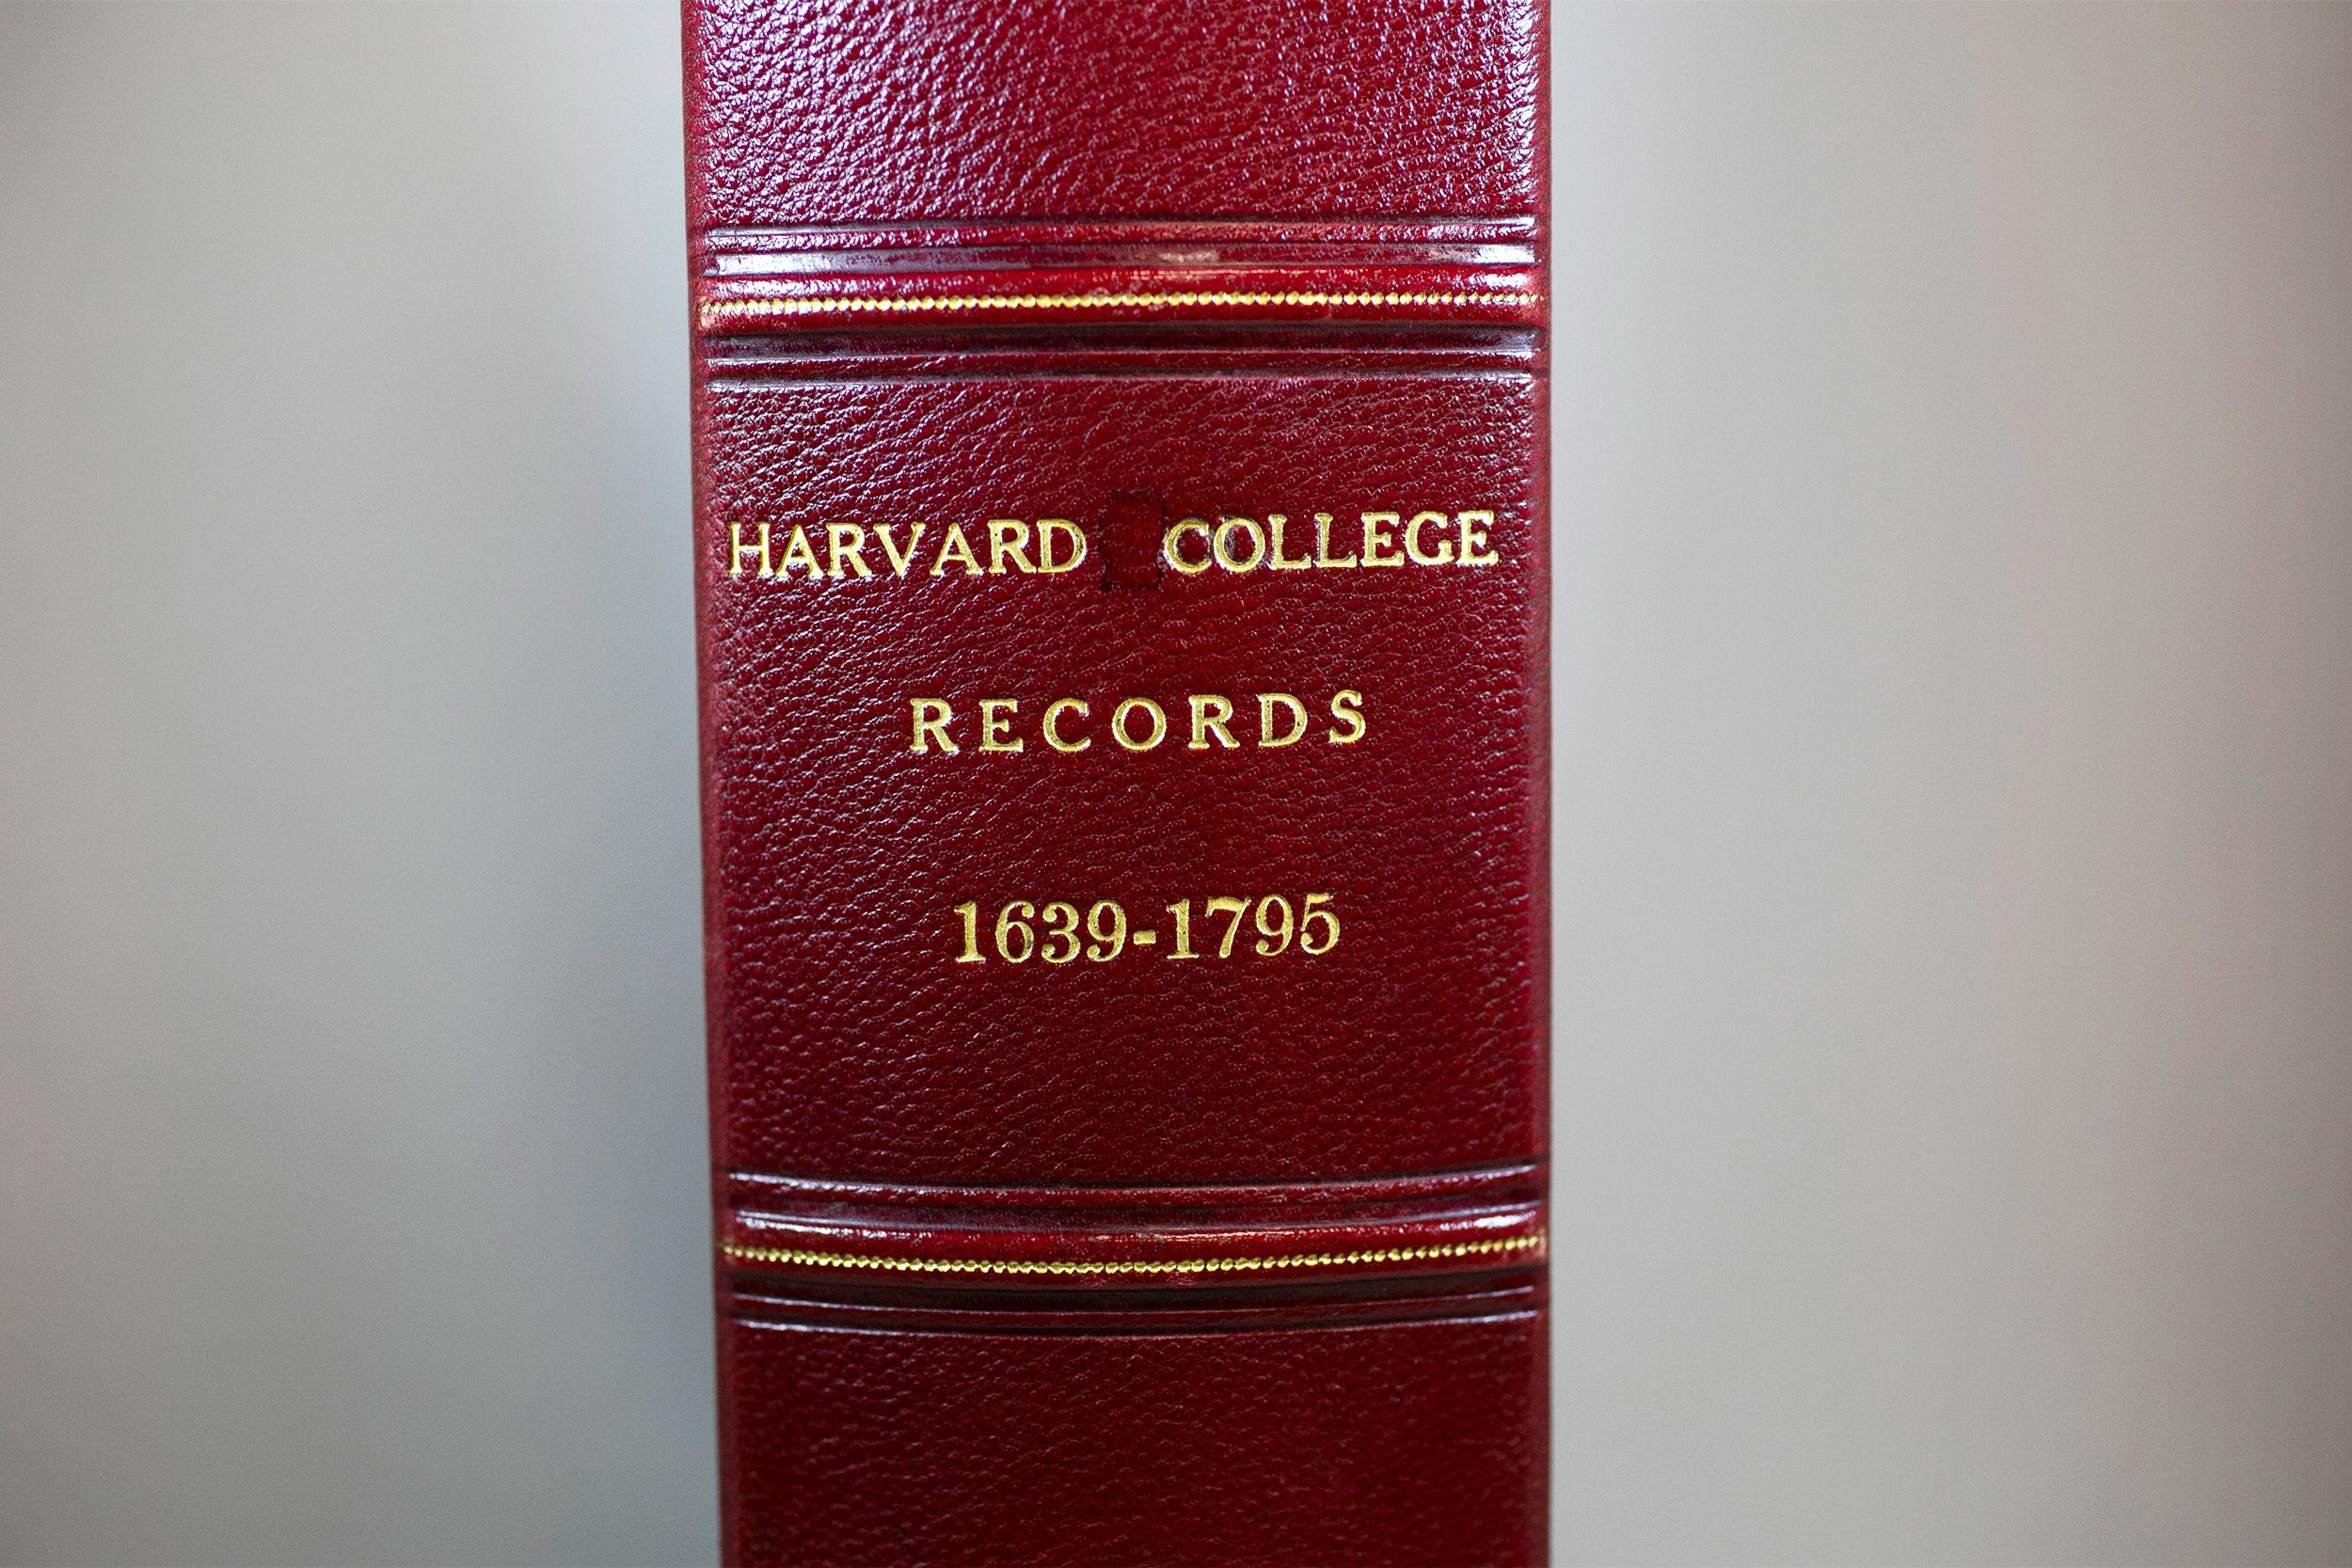 The University Archives in Pusey Library will display items presented to President Larry Bacow during his installation. The viewing is from 4:30 to 6 p.m. Friday and includes the oldest surviving record book, the College Book 1.